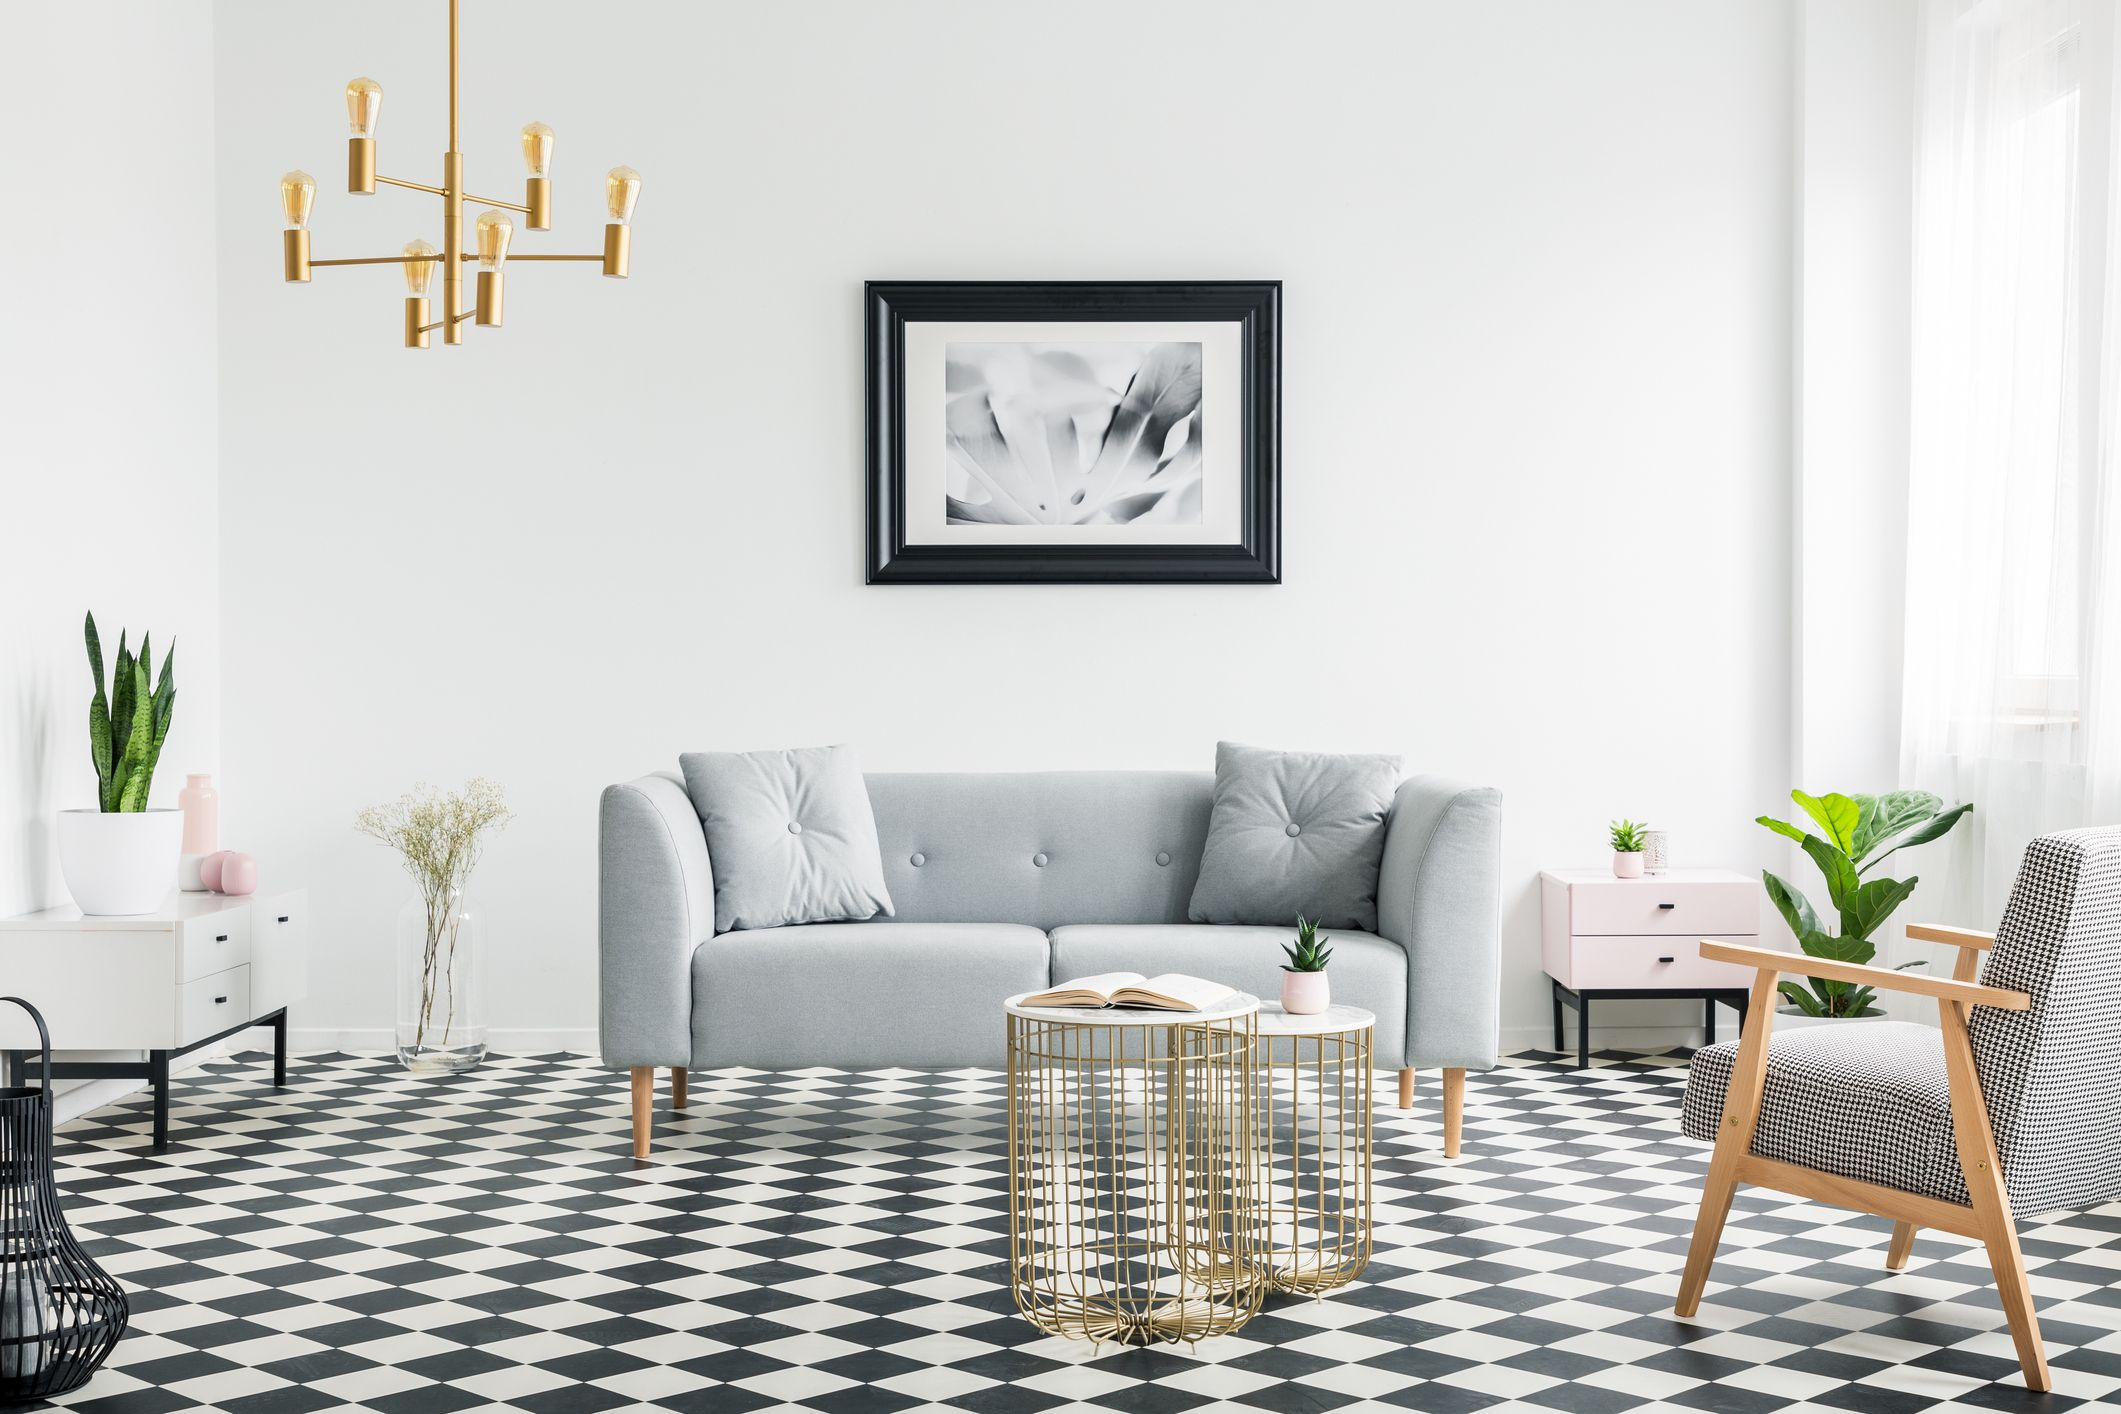 Gentil Poster Above Grey Sofa In Bright Patterned Living Room Interior With  Armchair And Gold Lamp.